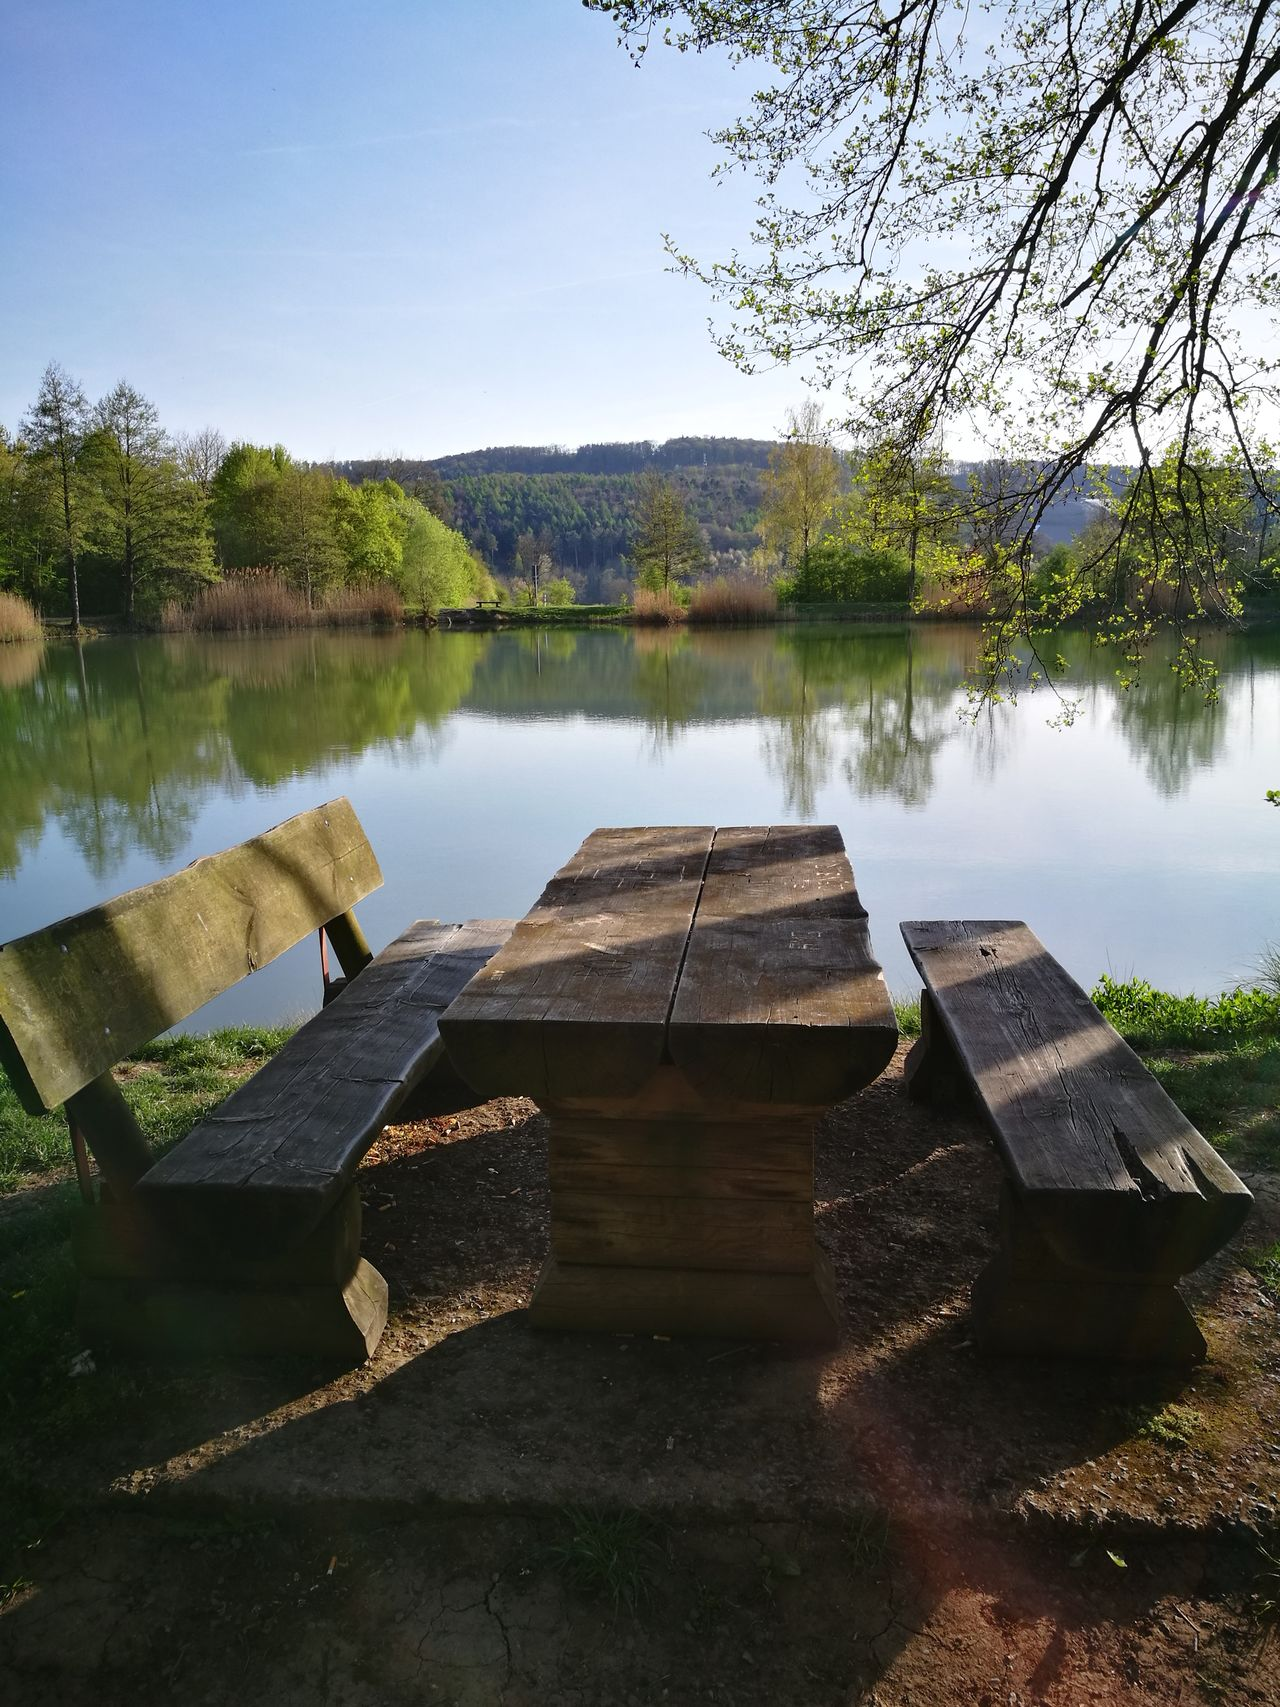 🌹🔆🌹 another Bench with a Relaxing View 🌹🔆🌹 Reflection Water Lake No People Tree Outdoors Nature Landscape Sky Beauty In Nature Day Tranquil Scene Tranquility Scenics Senic No Edit/no Filter The Purist (no Edit, No Filter) No Filter, No Edit, Just Photography Backgrounds EyEmNewHere The Secret Spaces The Great Outdoors - 2017 EyeEm Awards